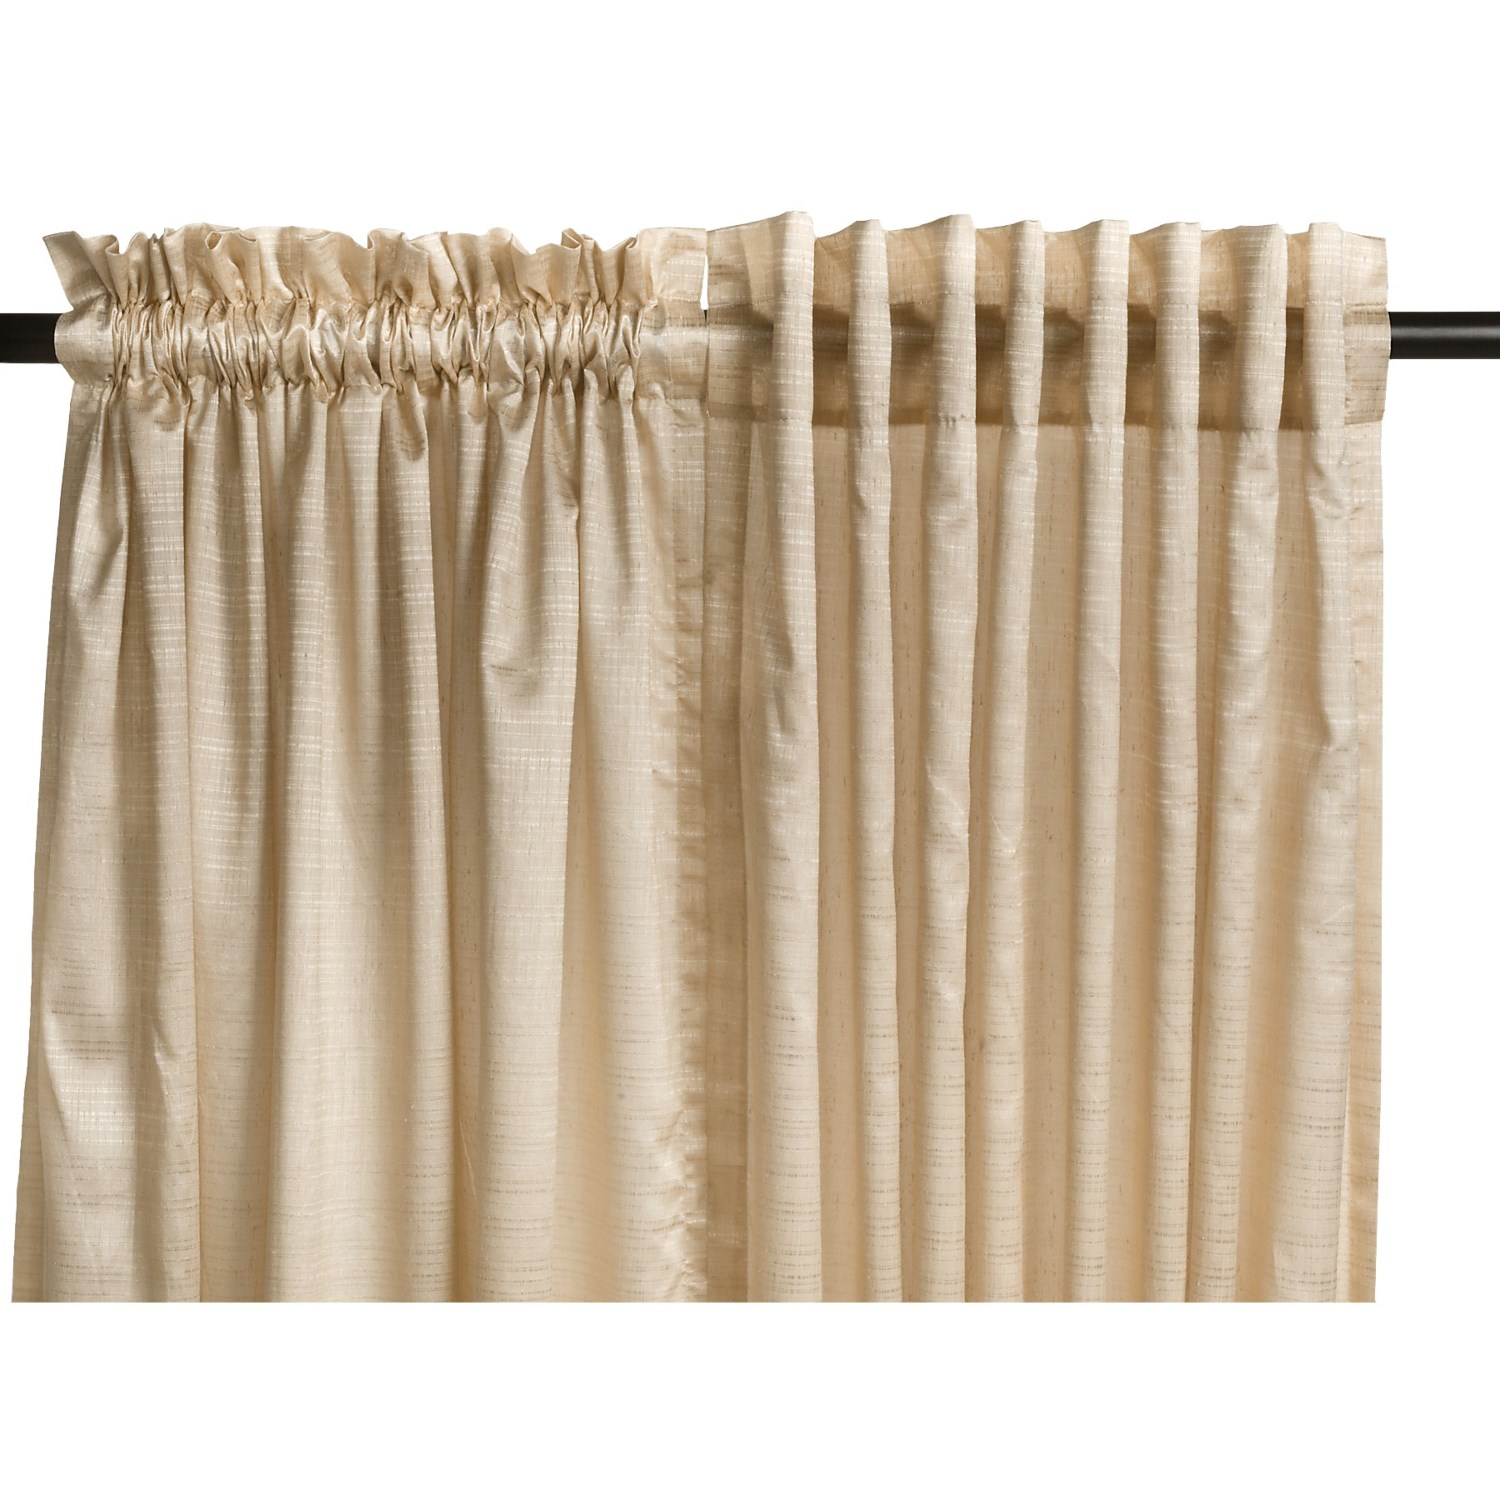 Day And Night Curtain Kitchen Tab Curtains